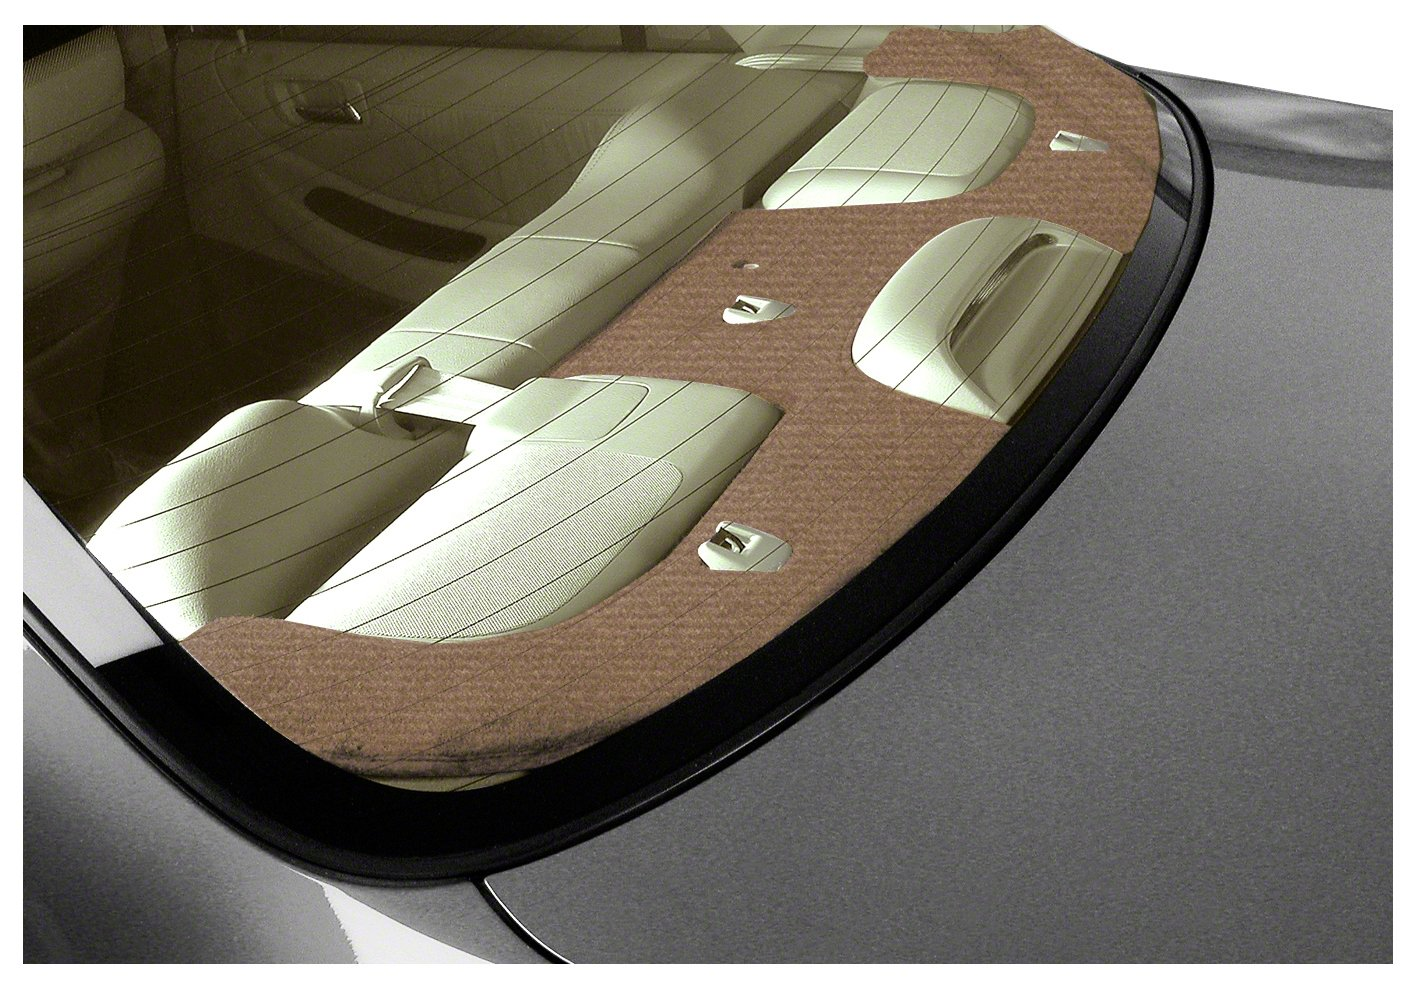 Coverking Custom Fit Dashcovers for Select BMW M5 Models - Velour (Tan) by Coverking (Image #1)